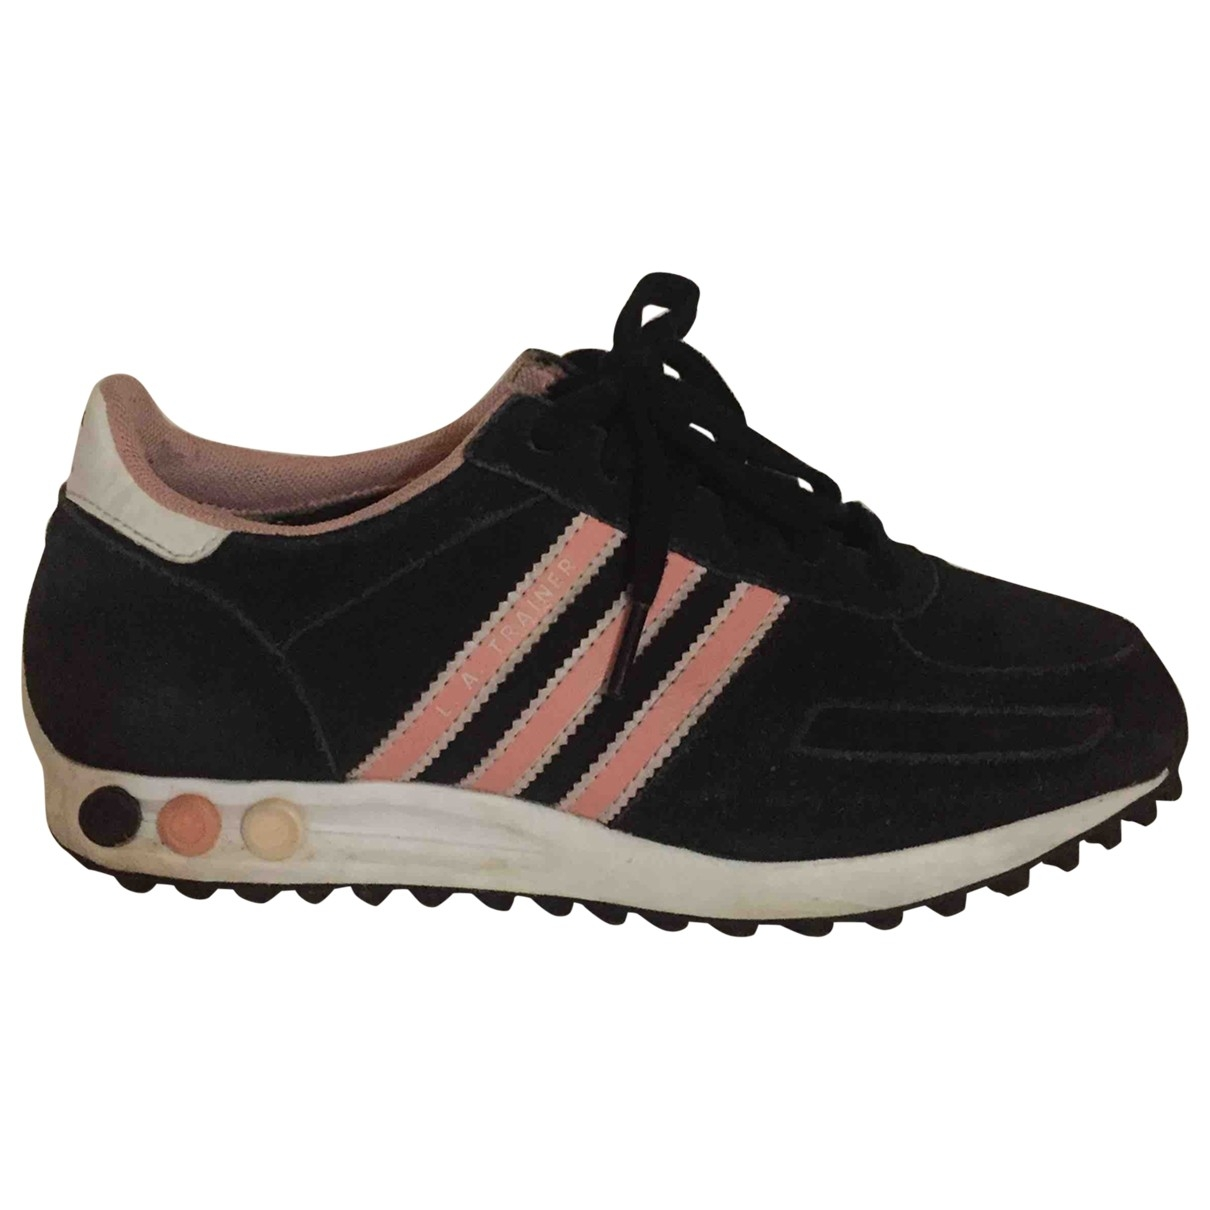 Adidas \N Black Suede Trainers for Women 37.5 EU